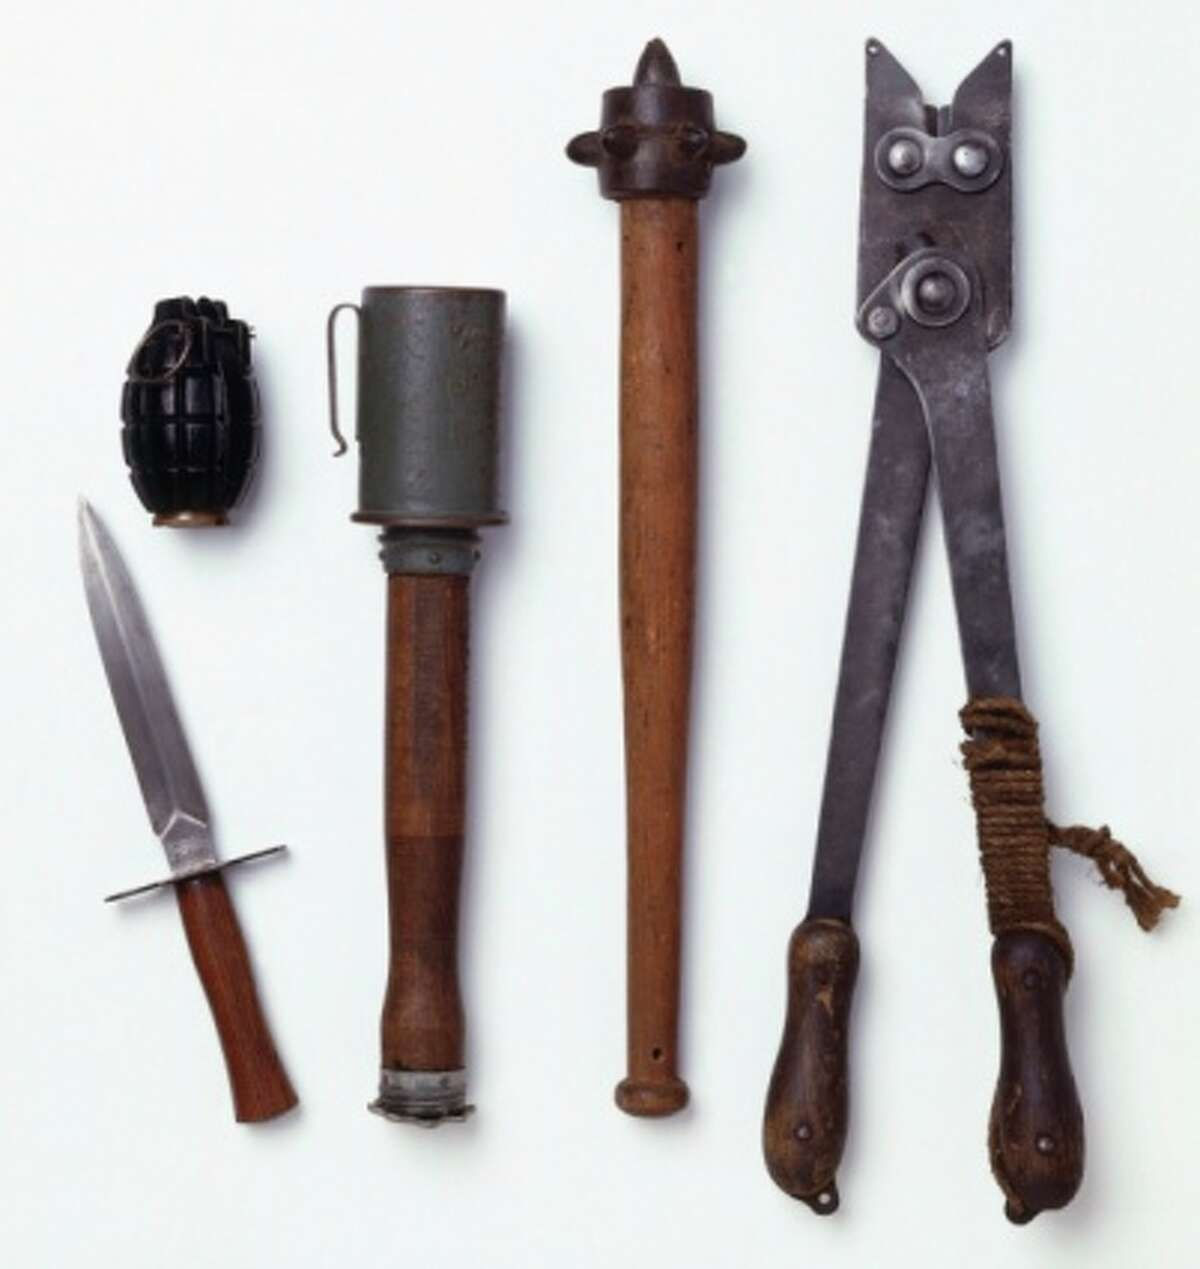 Weapons: Some of these, of course.